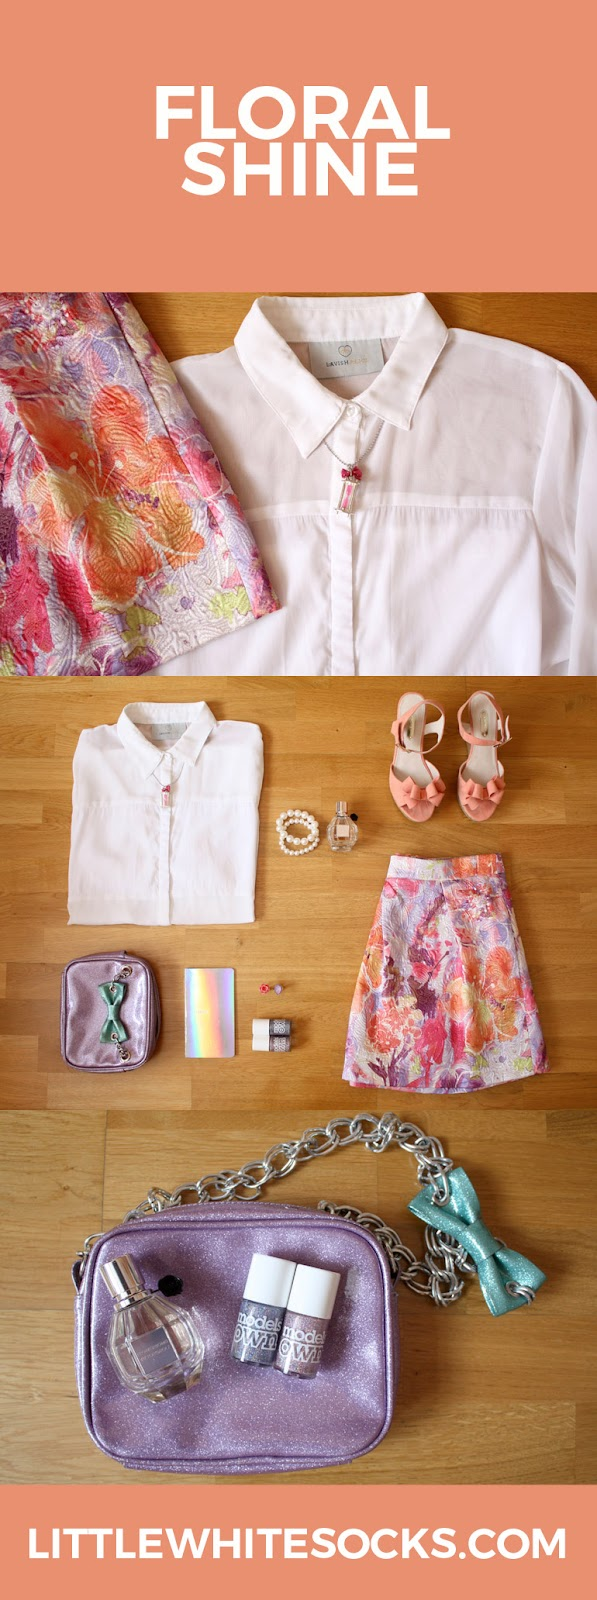 white blouse floral jacquard skirt outfit